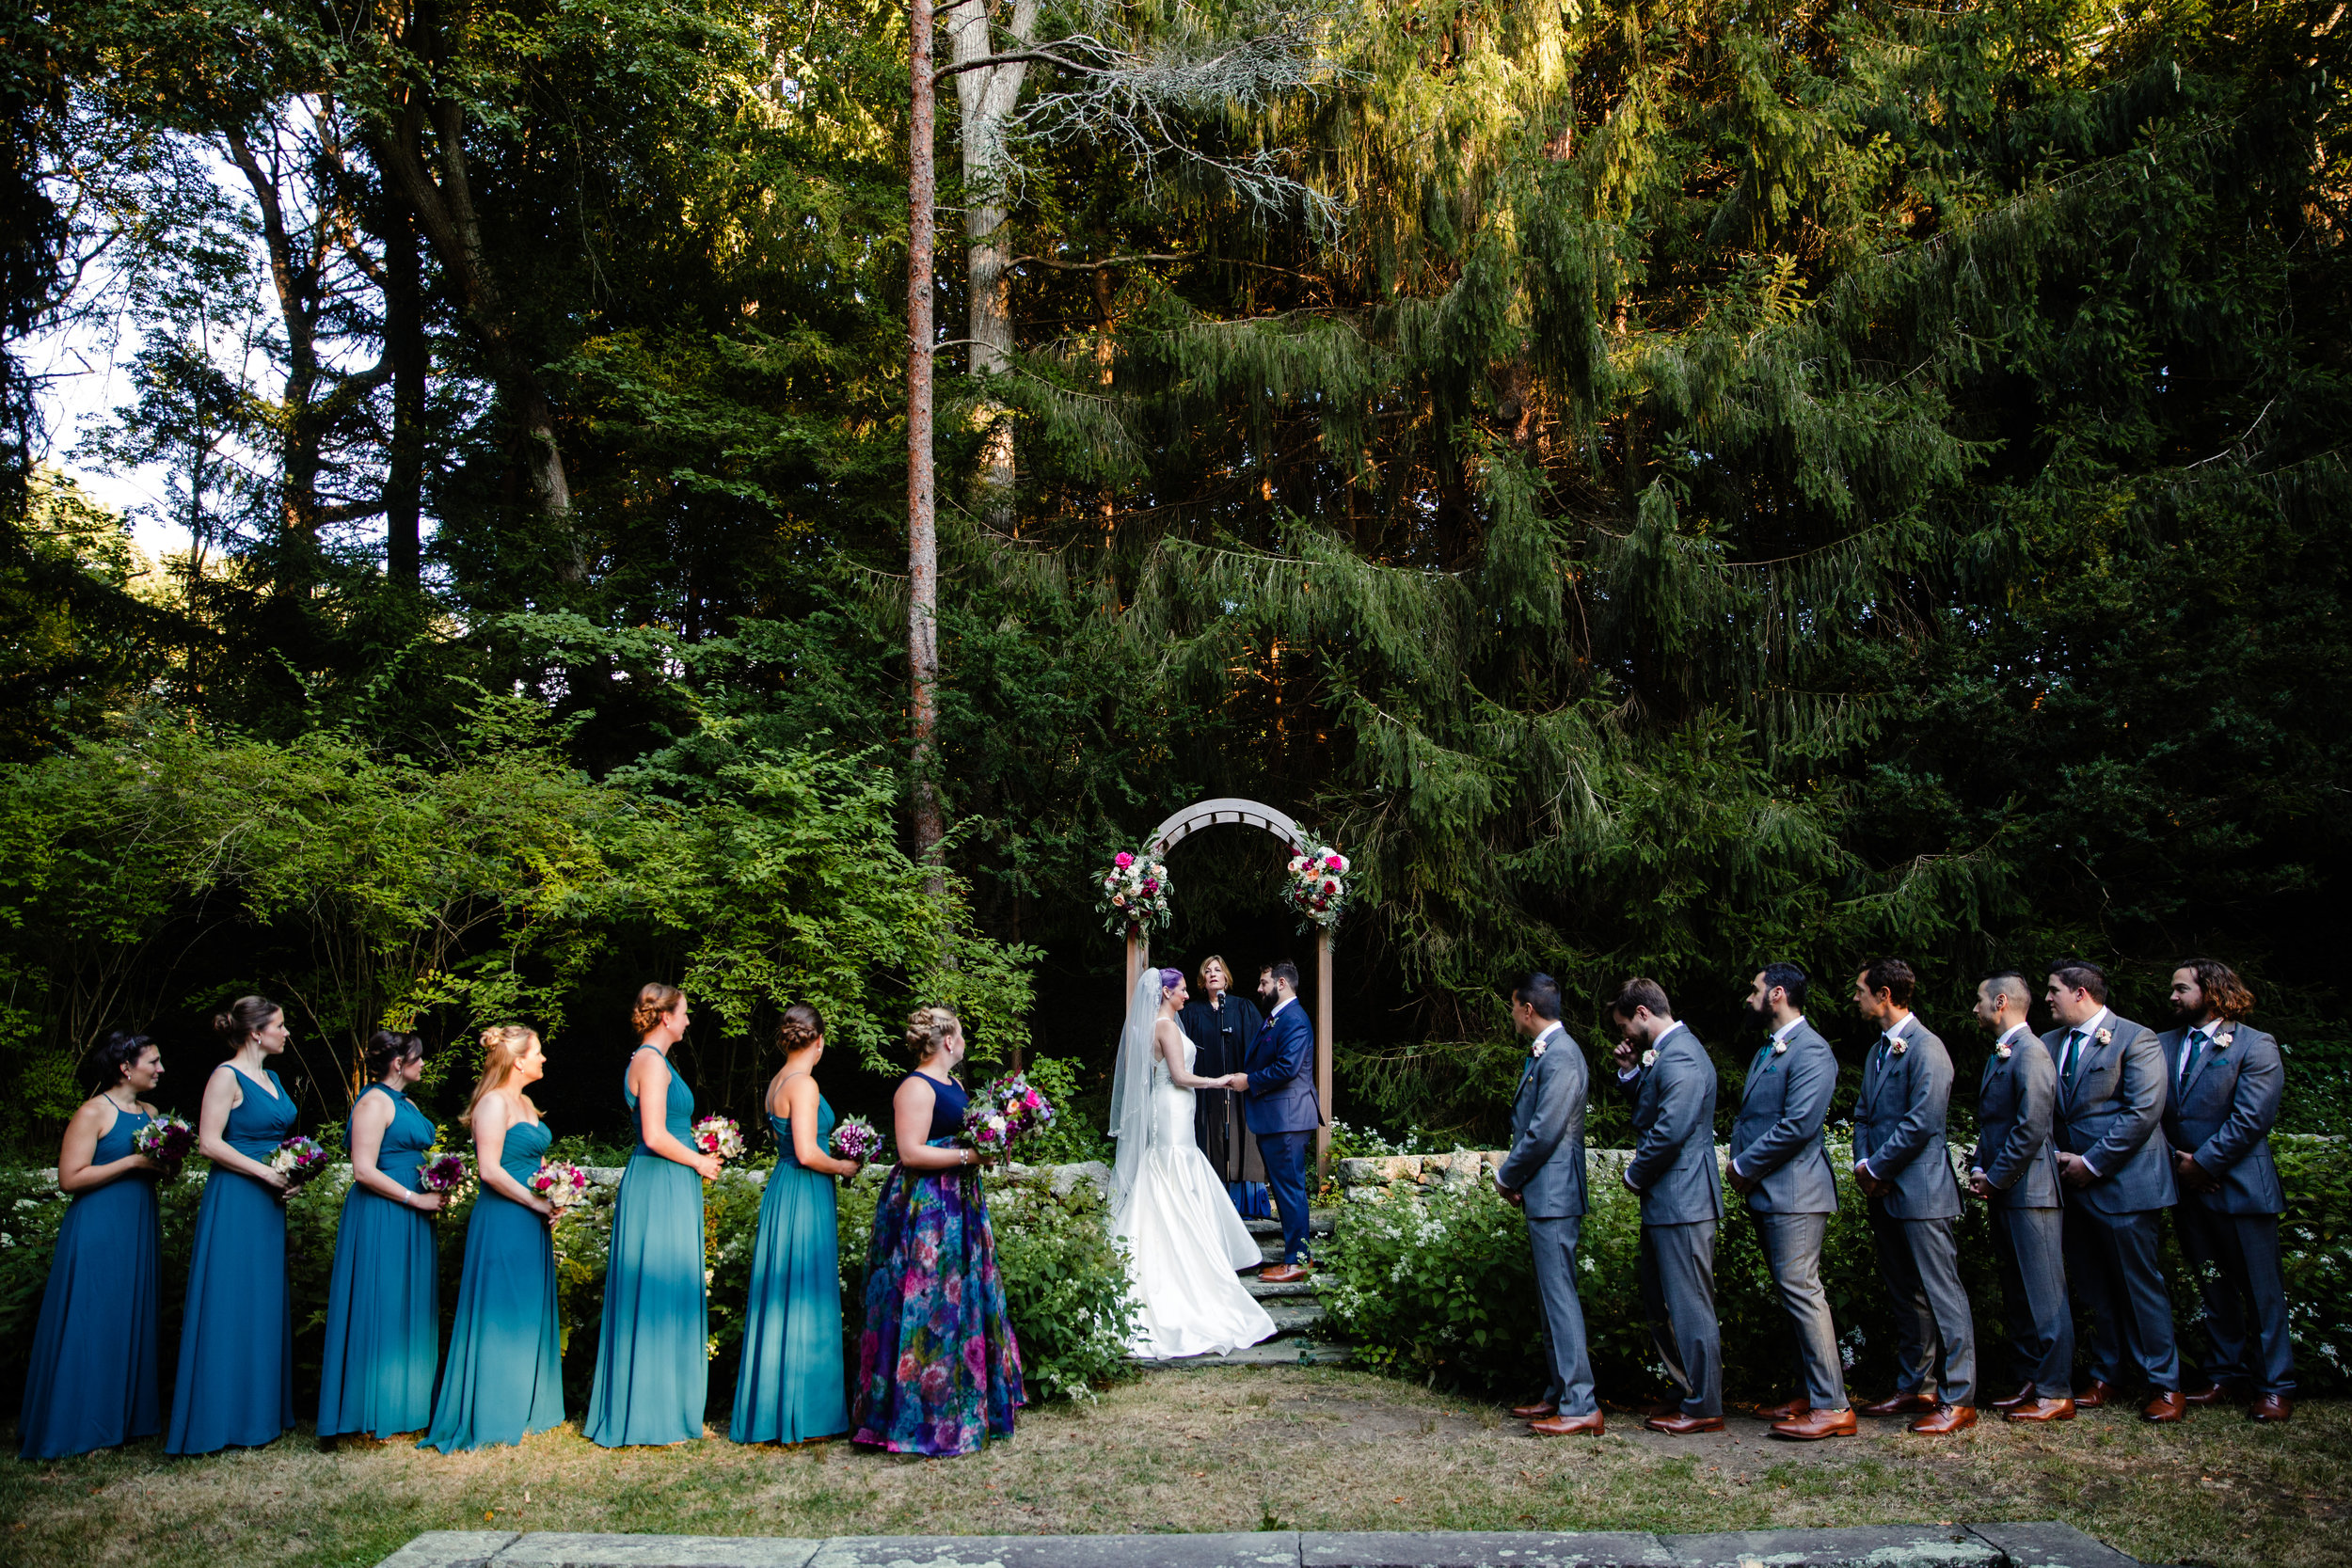 AmandaJoe_Wedding_Ceremony-201.jpg